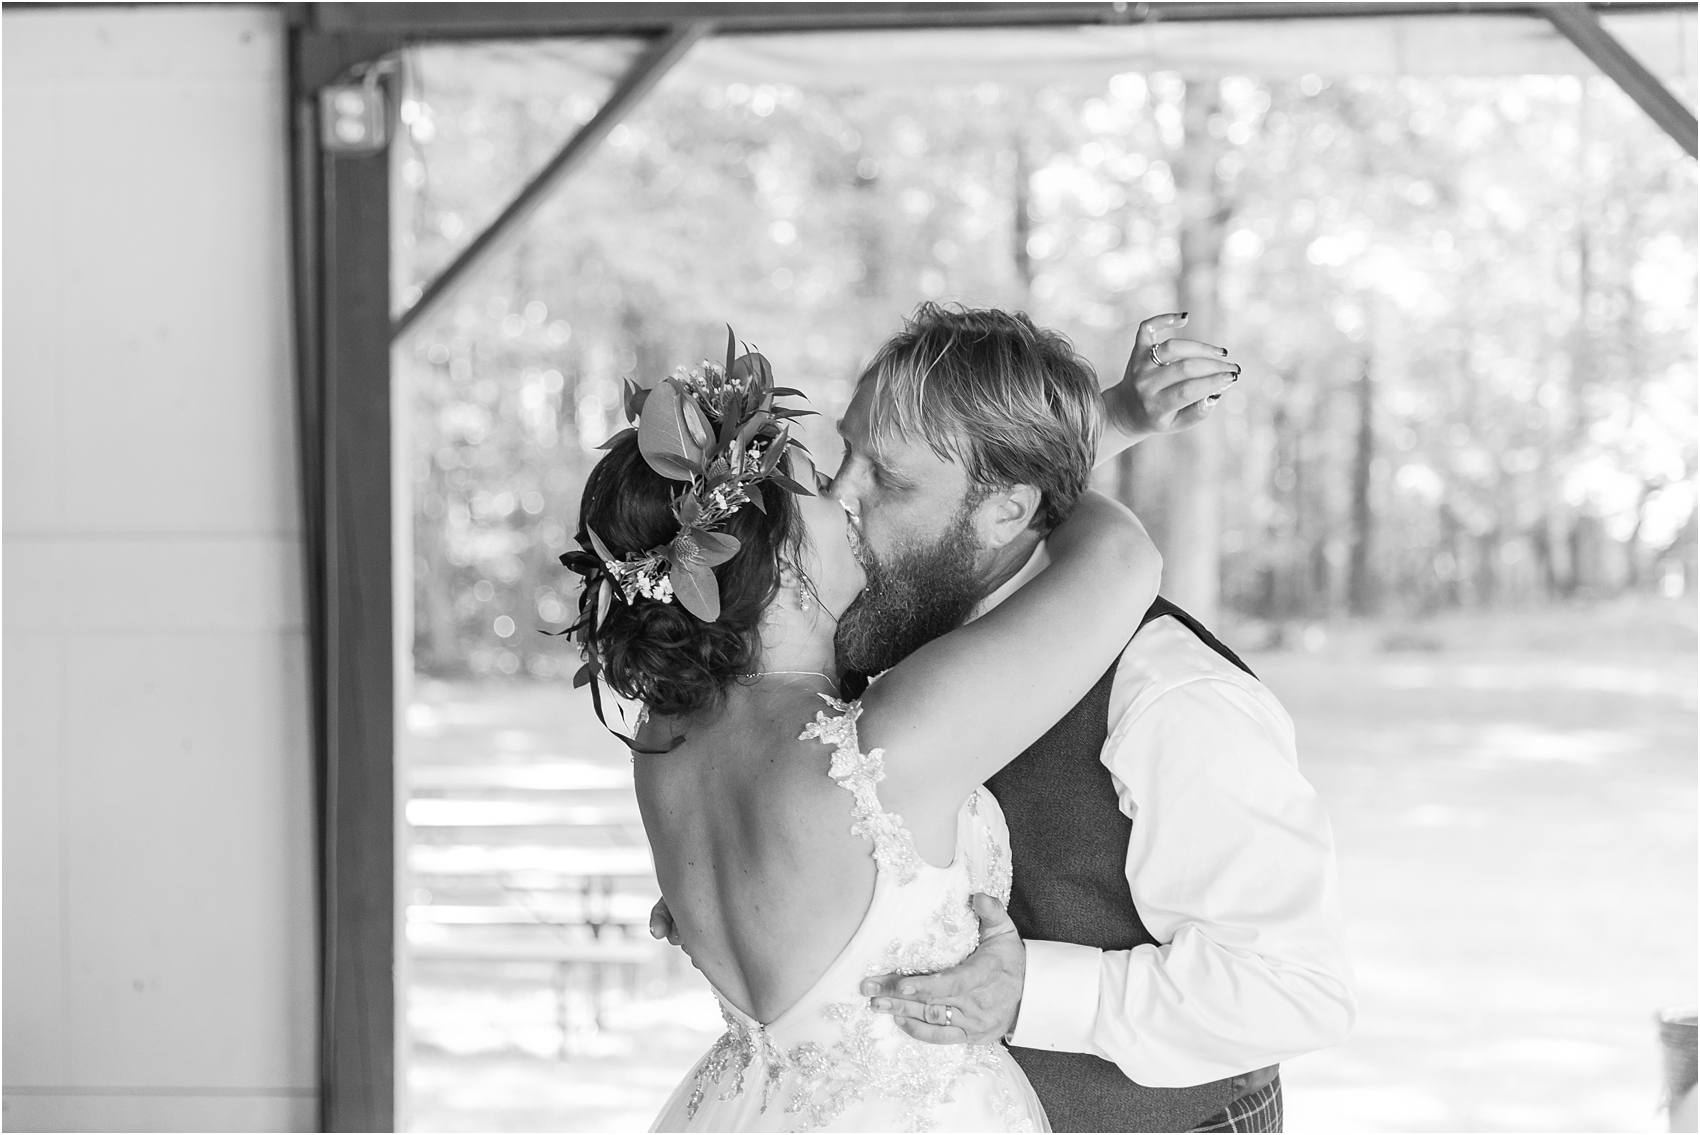 scottish-inspired-wedding-photos-in-the-country-in-port-sanilac-michigan-by-courtney-carolyn-photography_0045.jpg